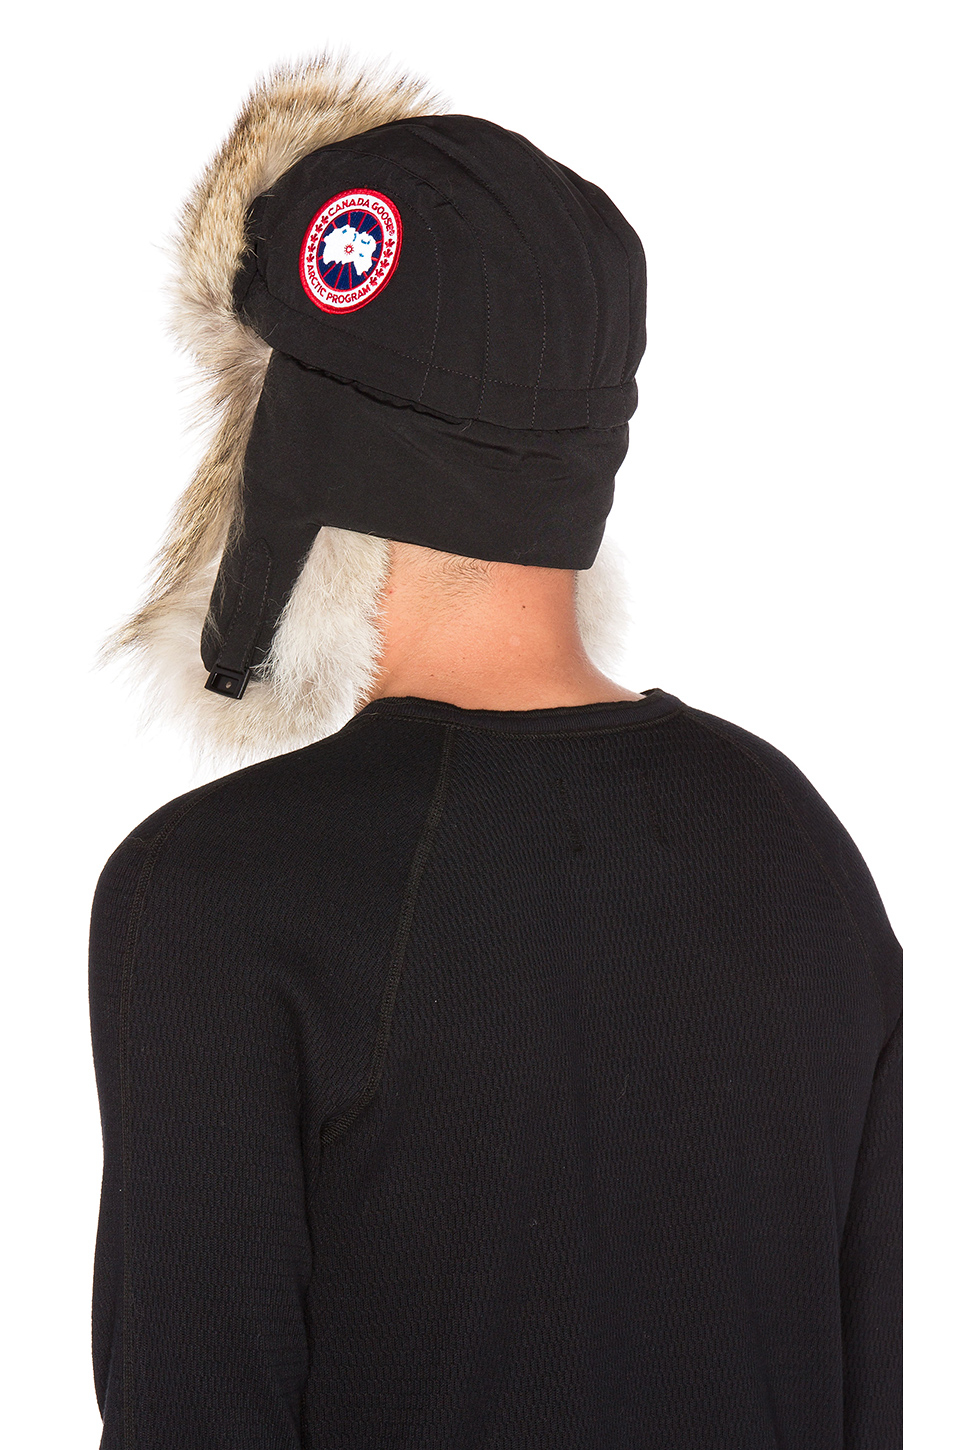 c807b31454c Shearling Sheepskin Cap With Snap Flaps And Leather Trim. Bomber Black Fur  Leather Jacket - Uh Jackets Lyst - Canada goose ...